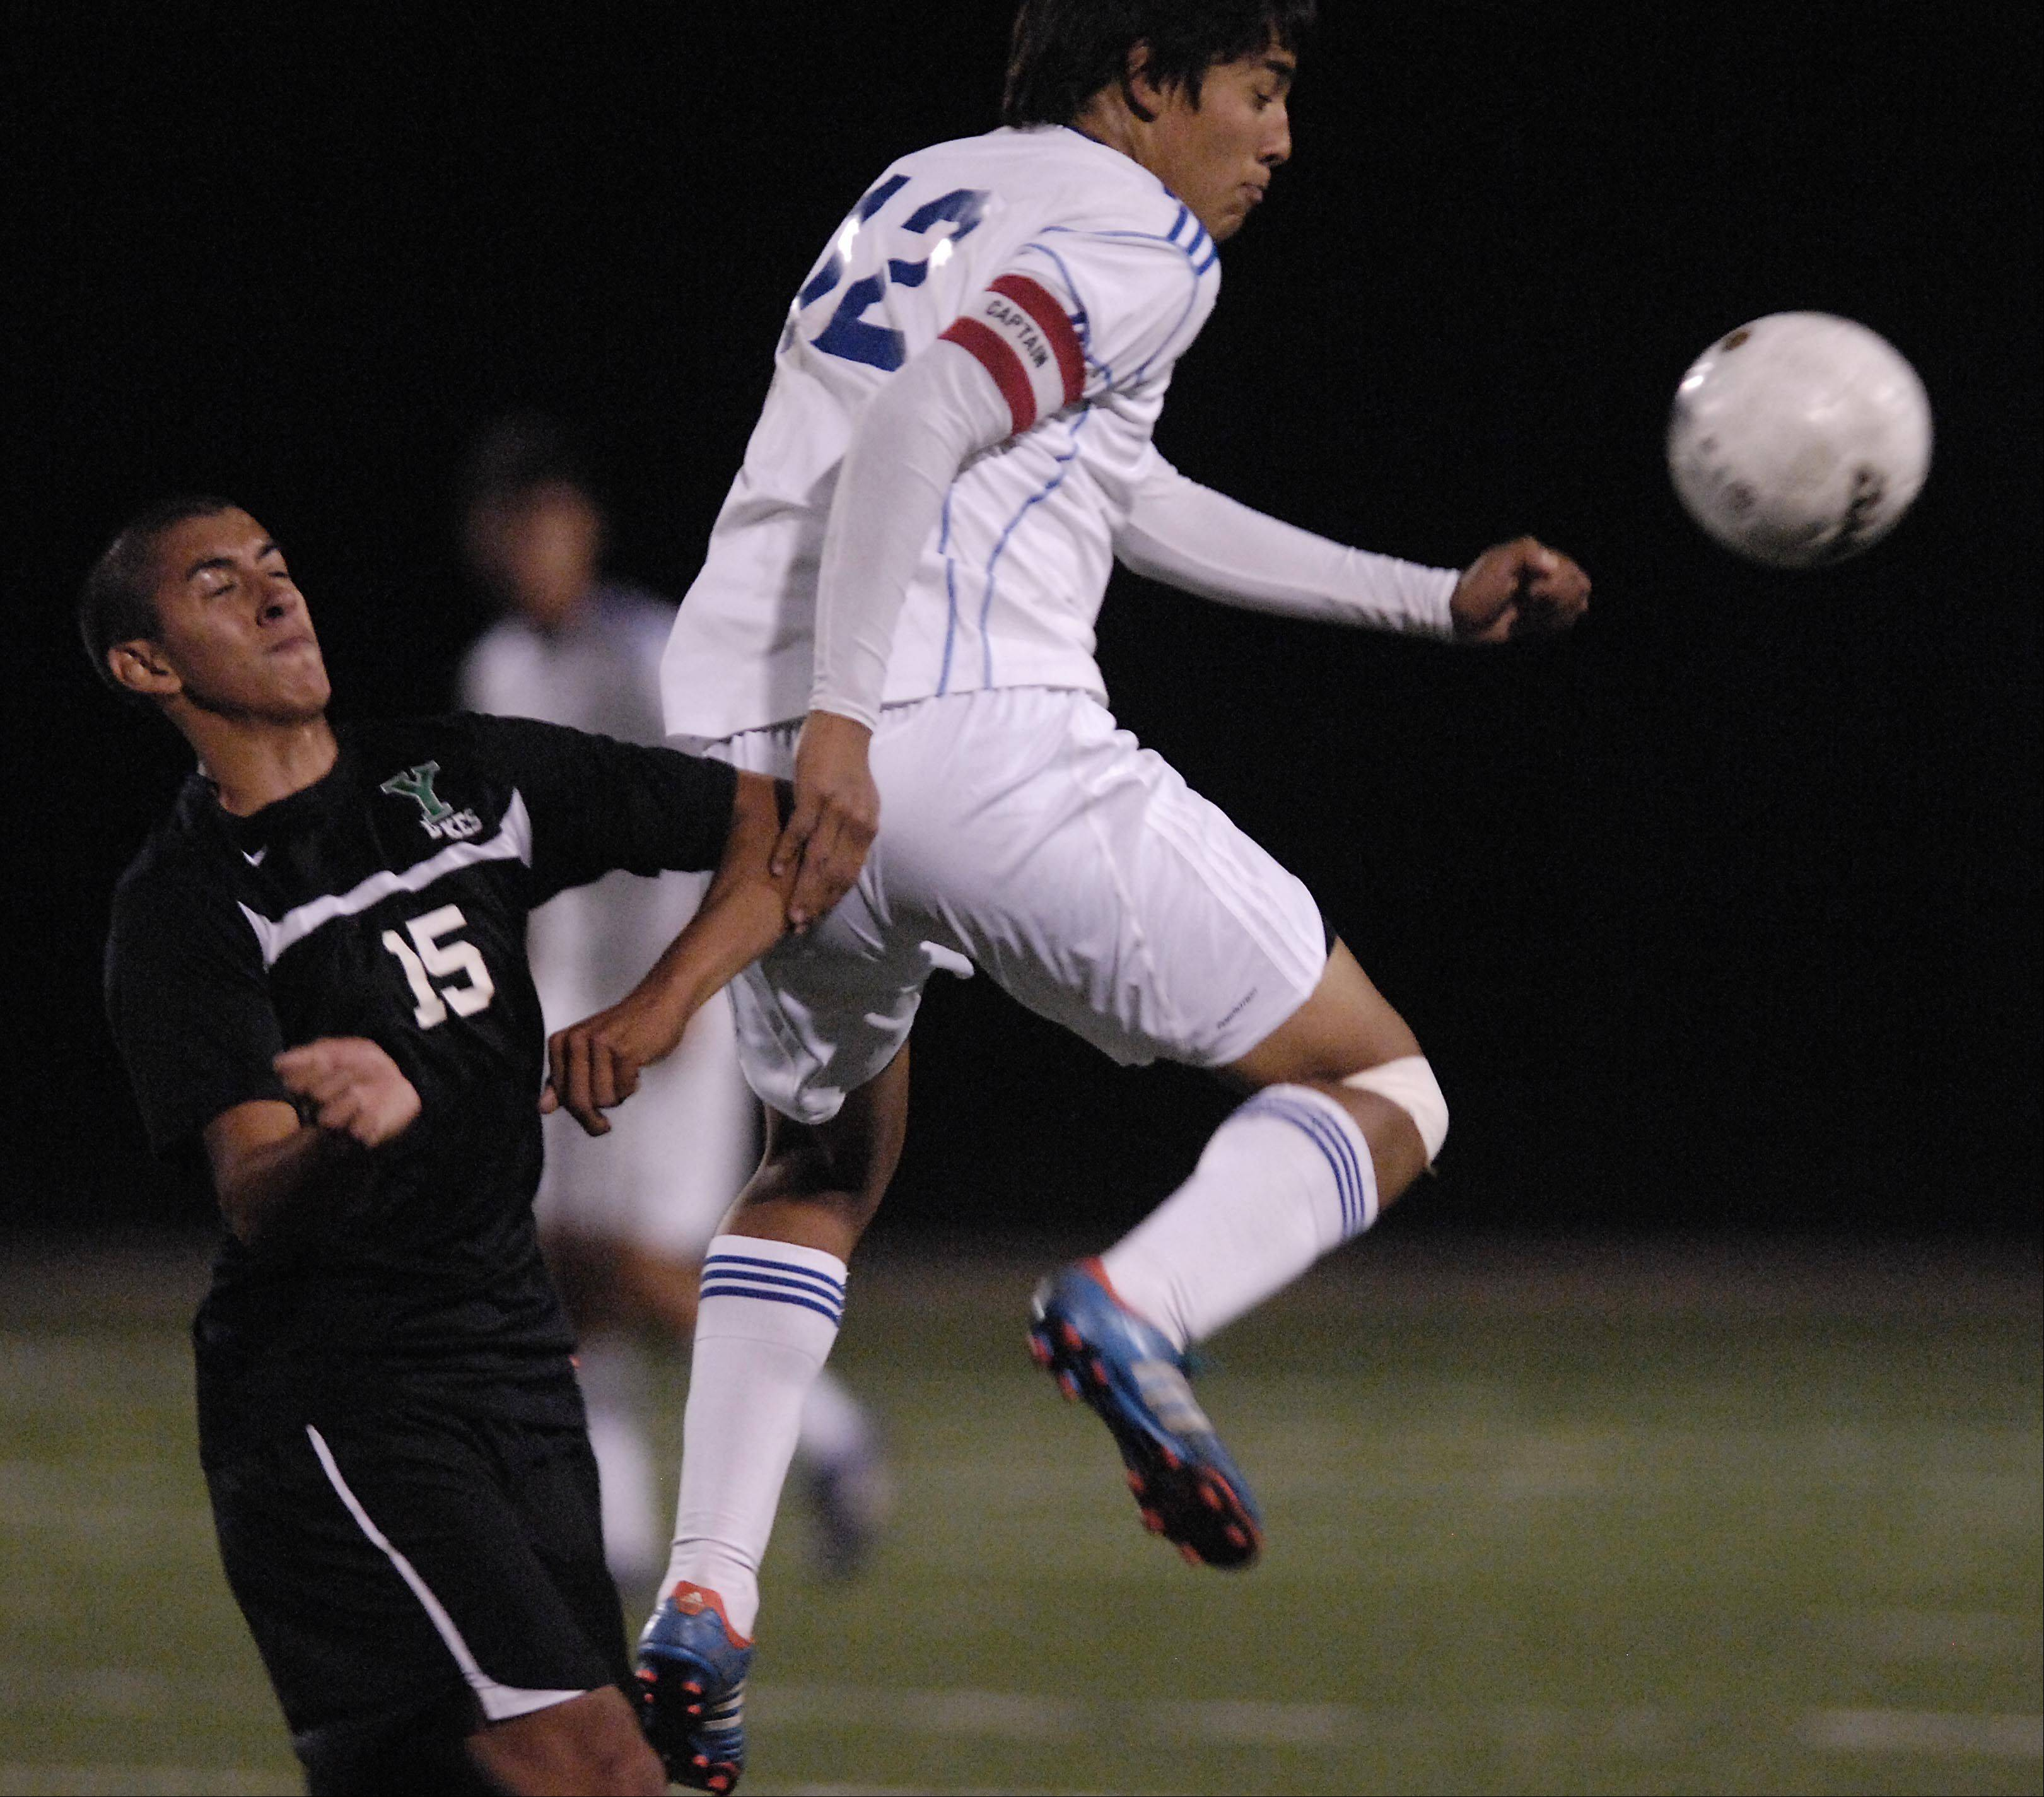 Larkin's Tony Hernandez gets to the ball before York's Danny Gordillo Tuesday in the Schaumburg regional playoff game.